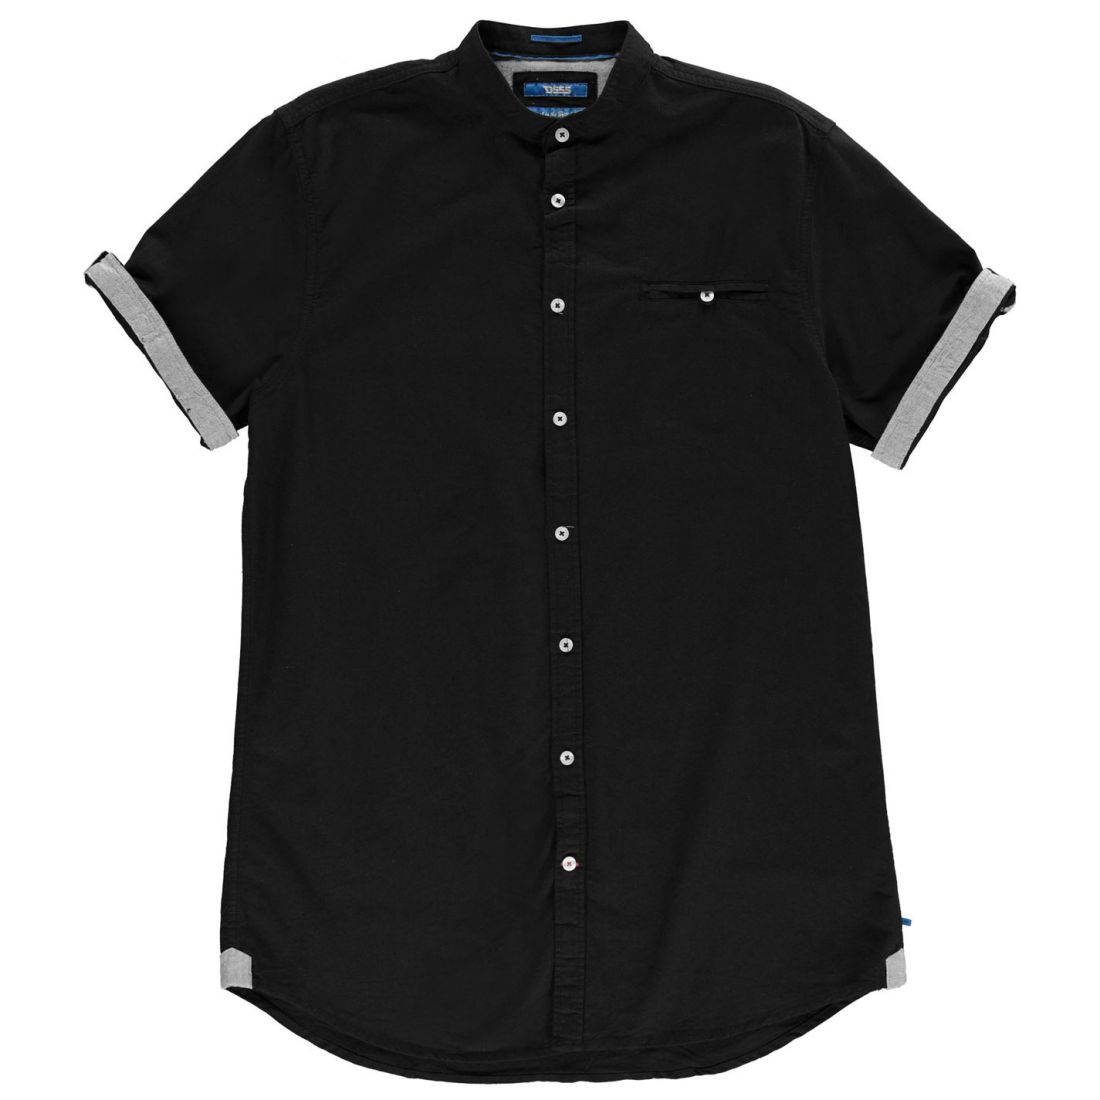 D555 Mens Dwight Oxford Short Sleeve Shirt Casual Cotton Button Placket Chest